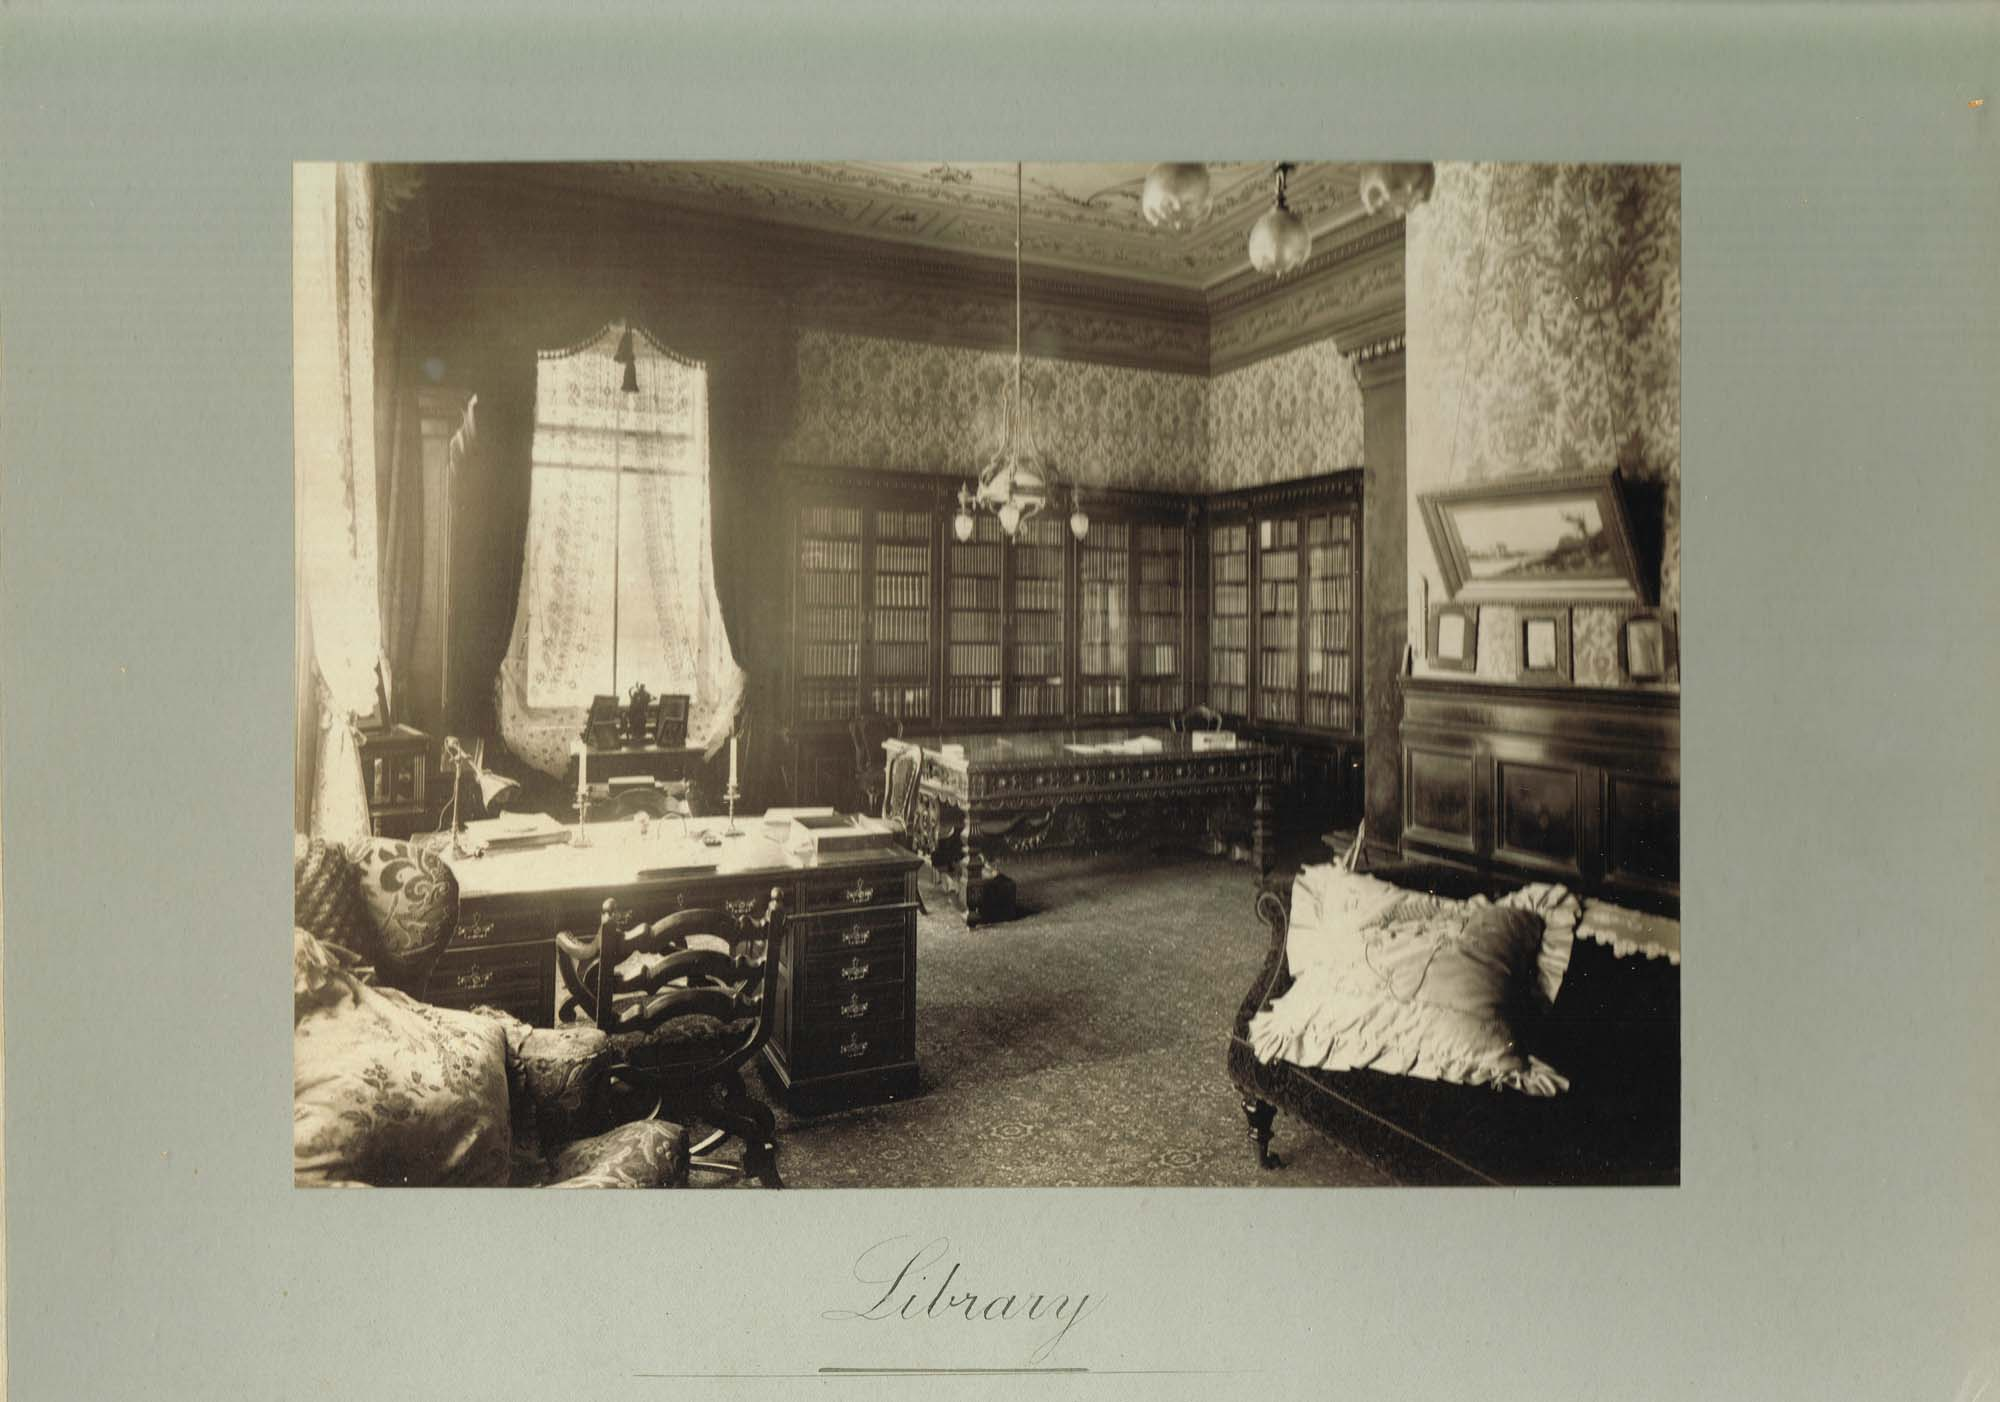 Black and white photograph of the Library at Ralston